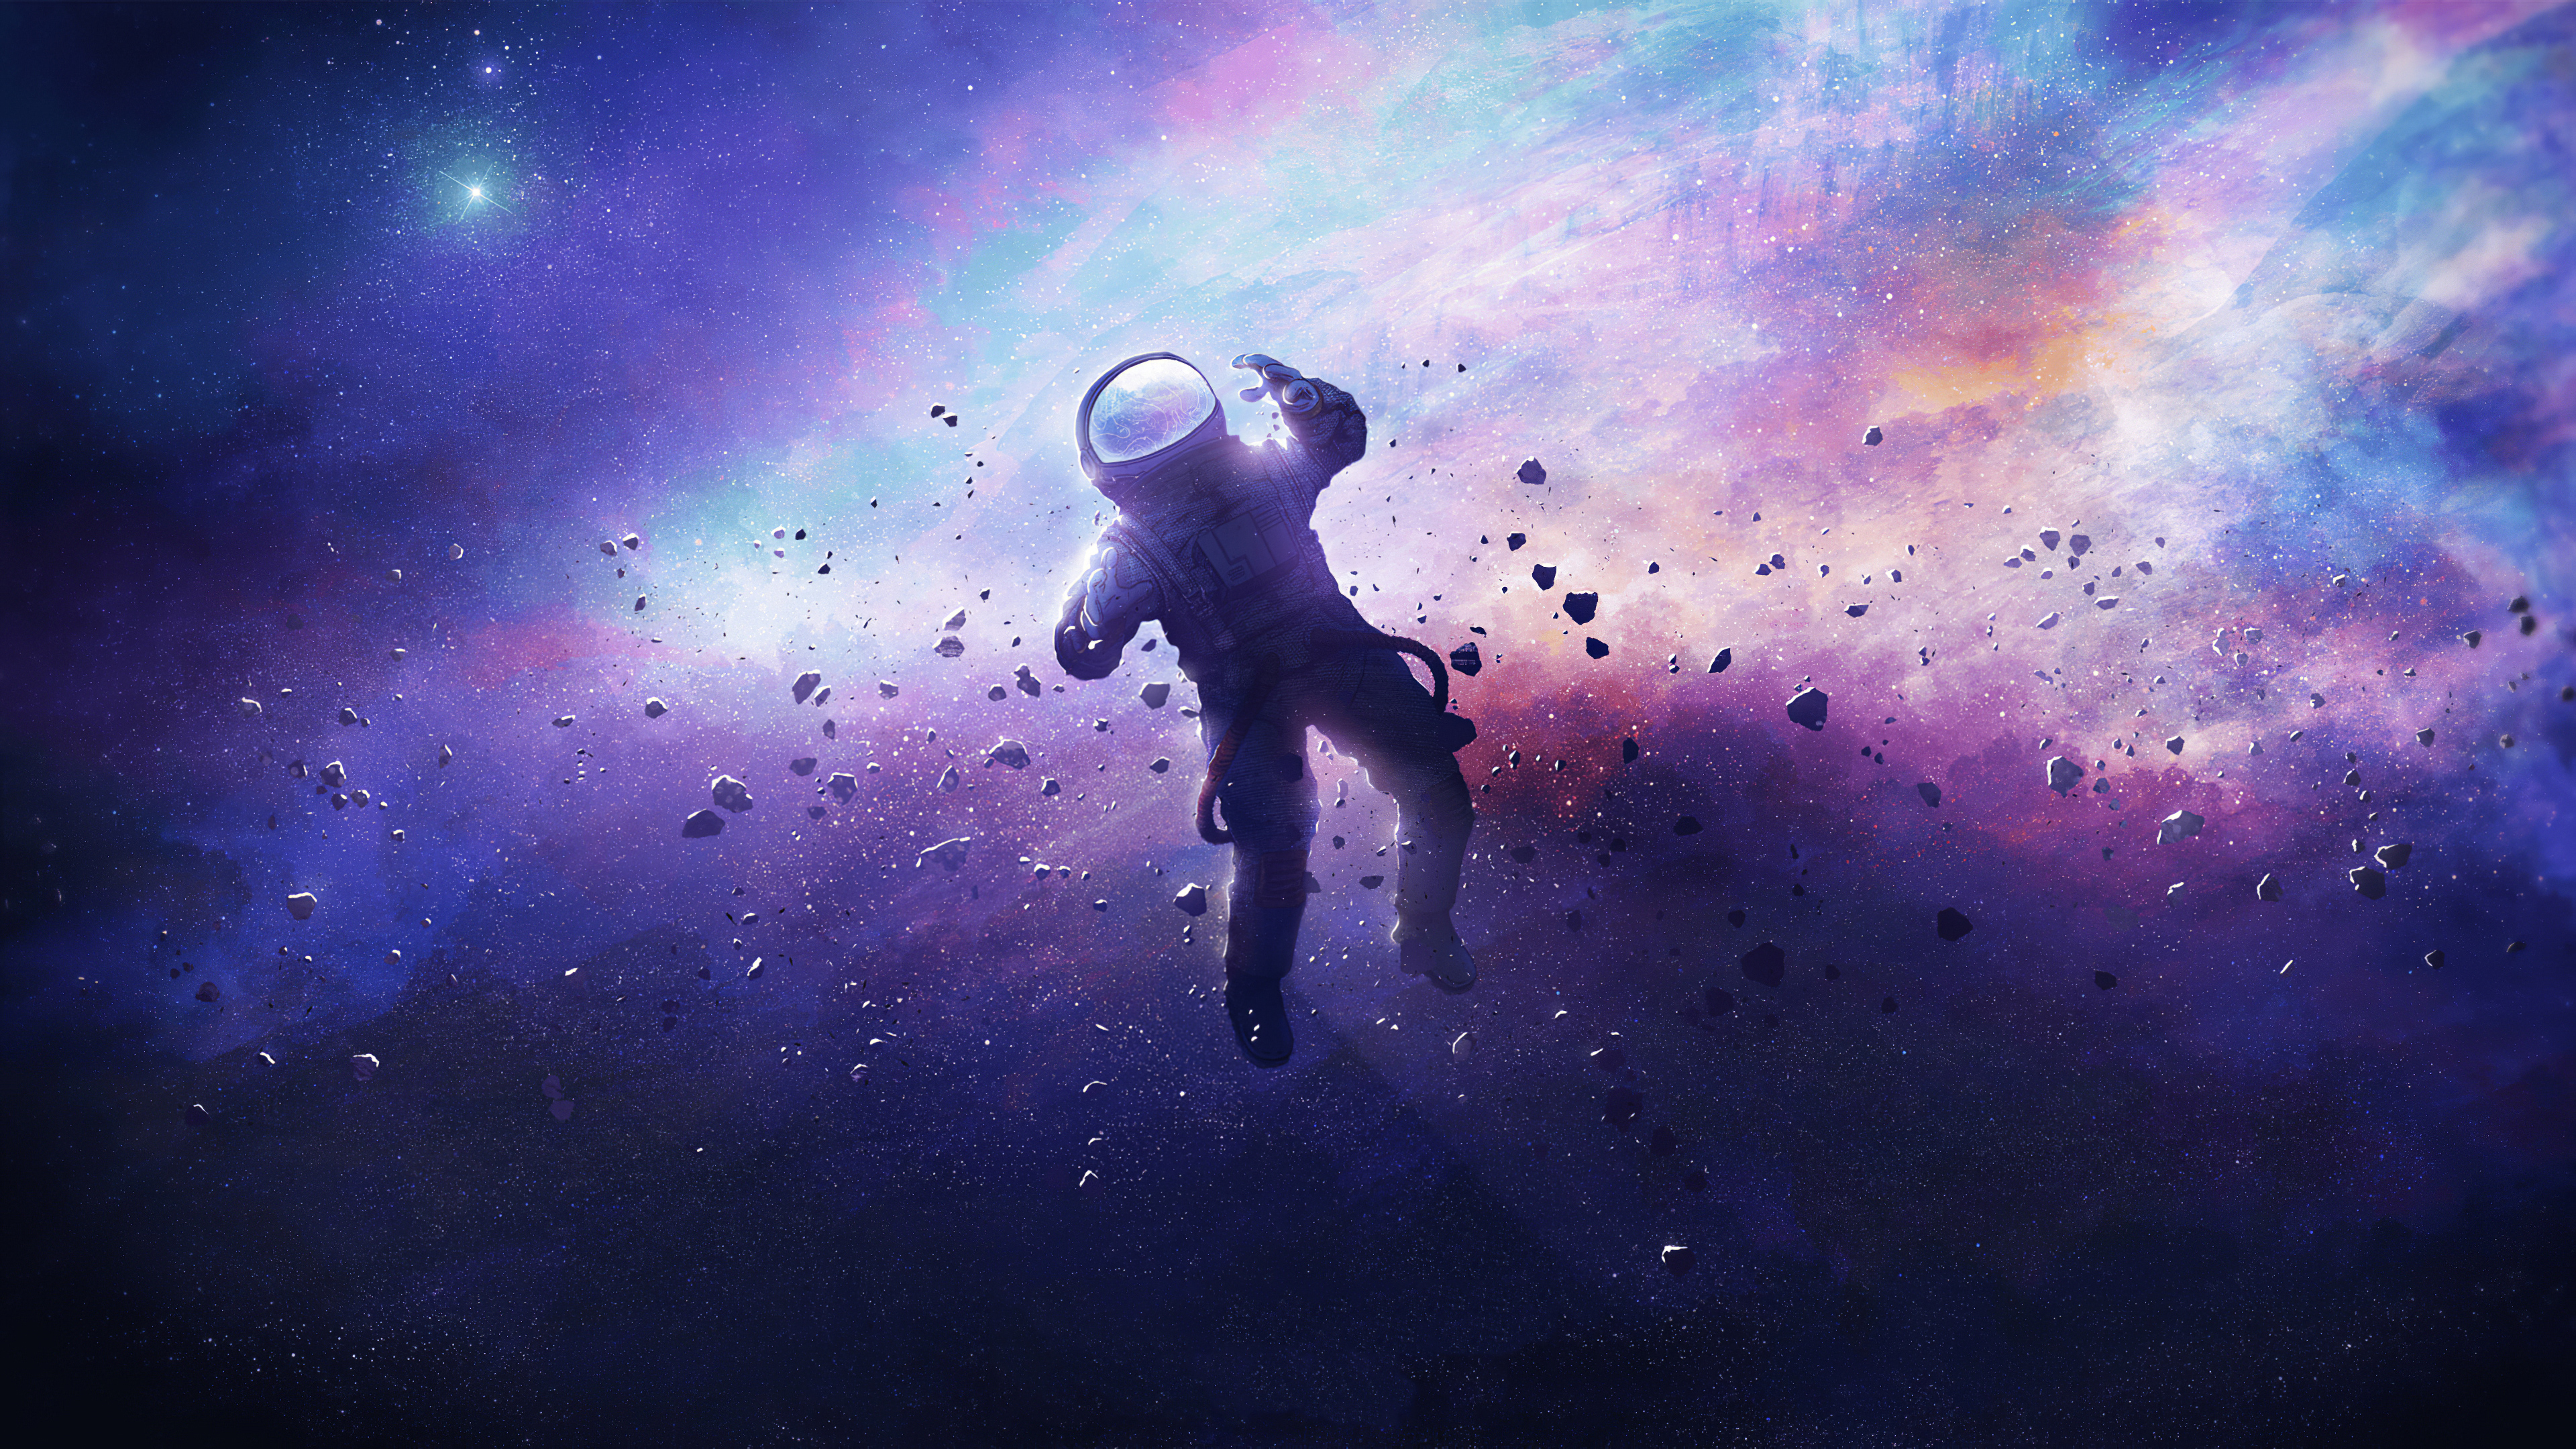 Wallpaper Astronaut lost in space